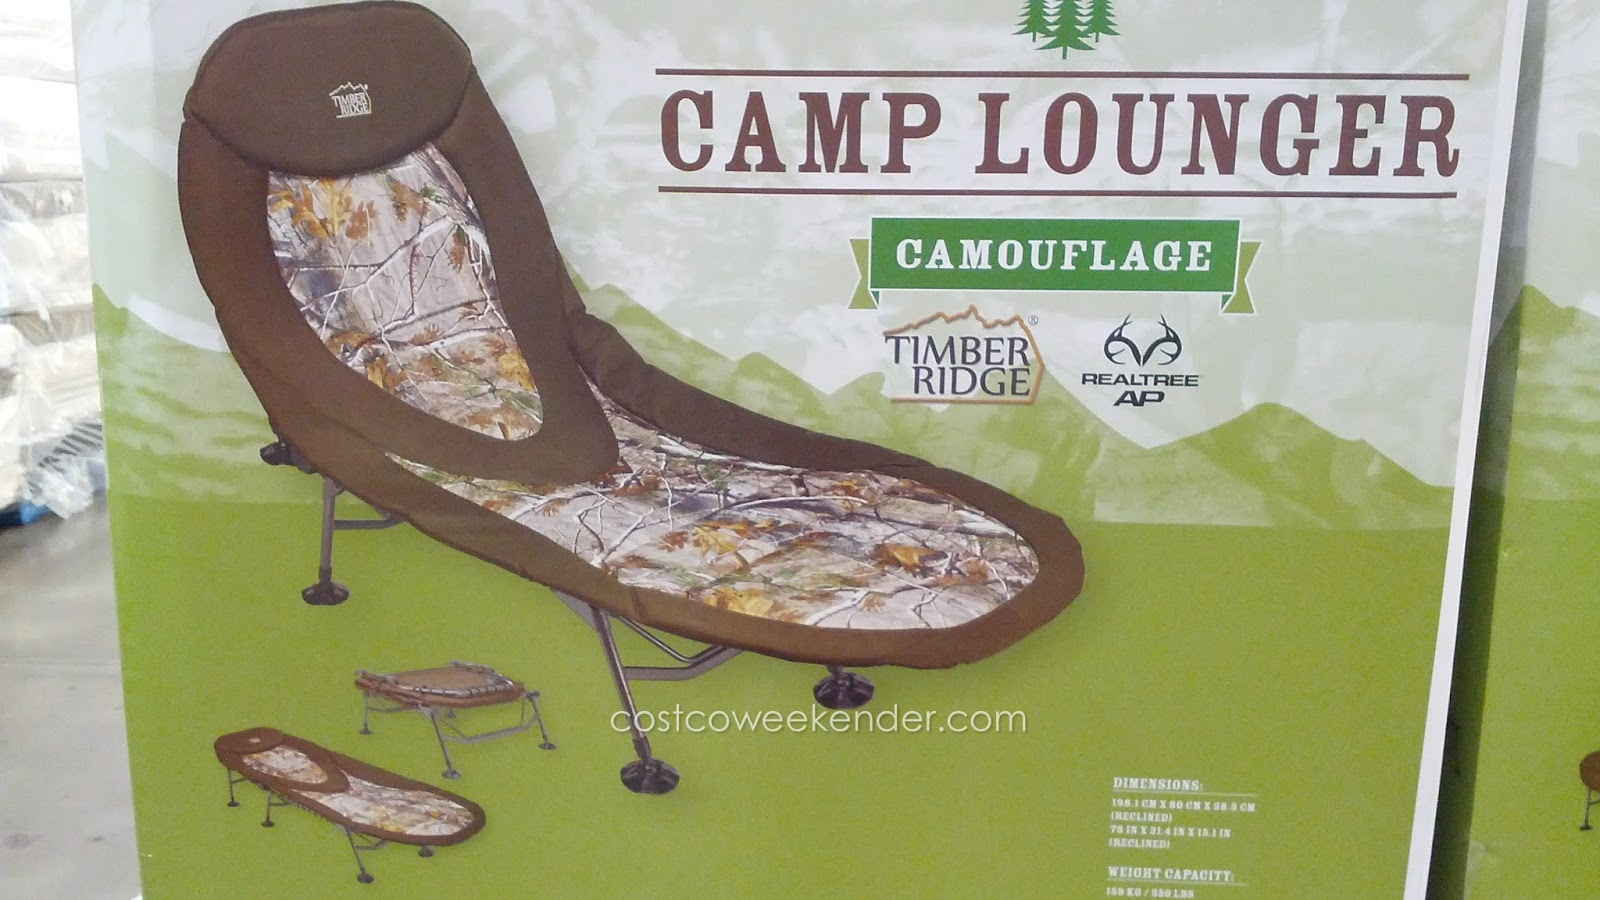 Hanging Chair Costco Kids Sleeper Timber Ridge Camp Lounger Cot Camouflage